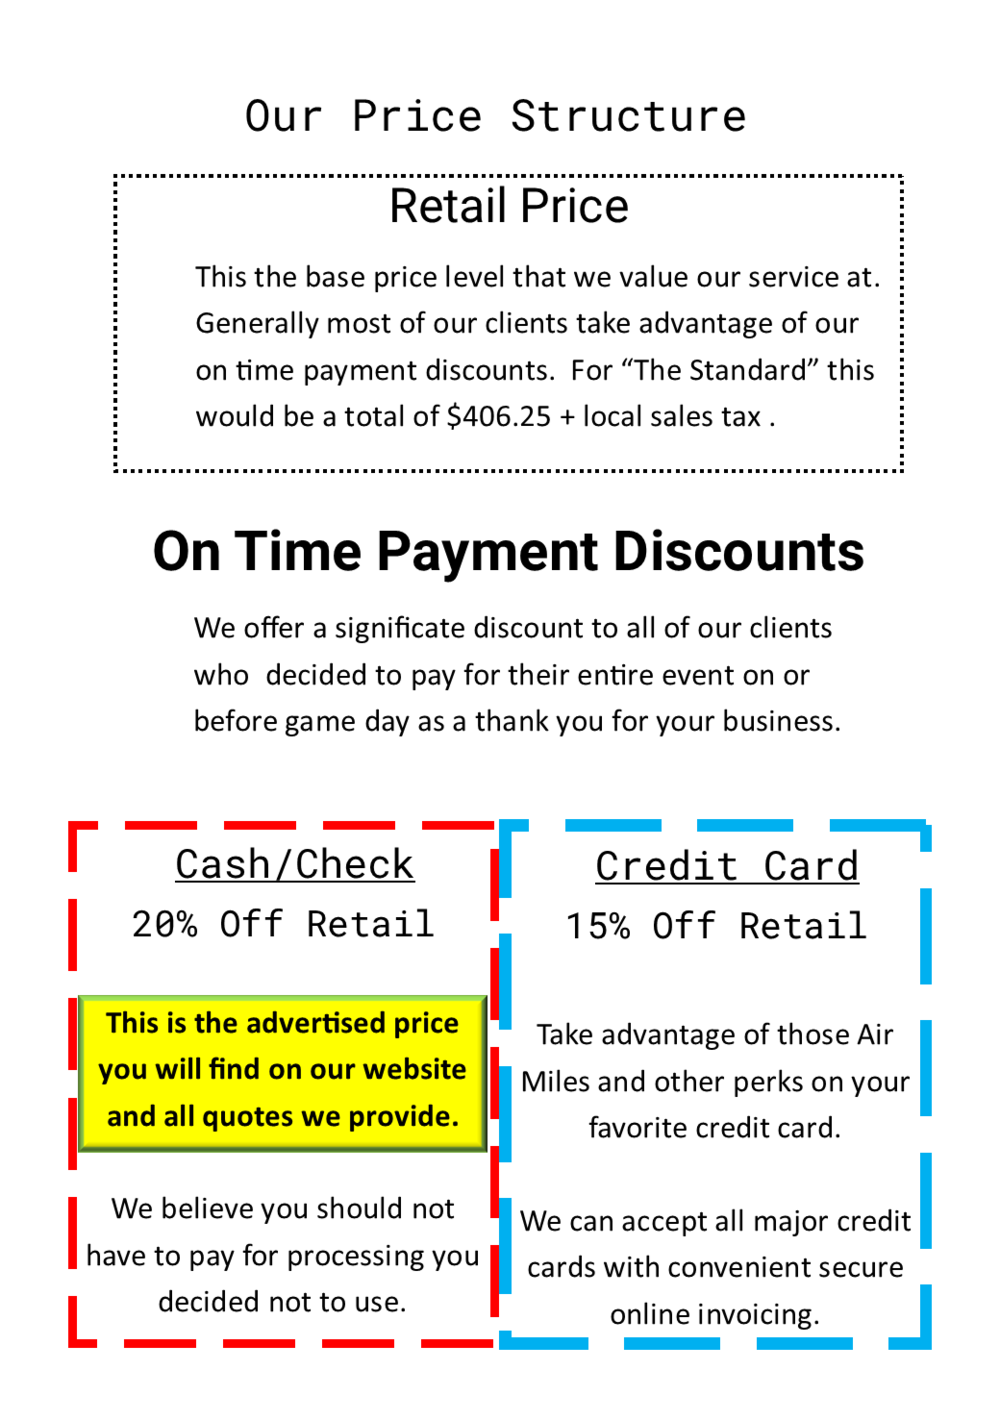 How our pricing works Rev 2.png